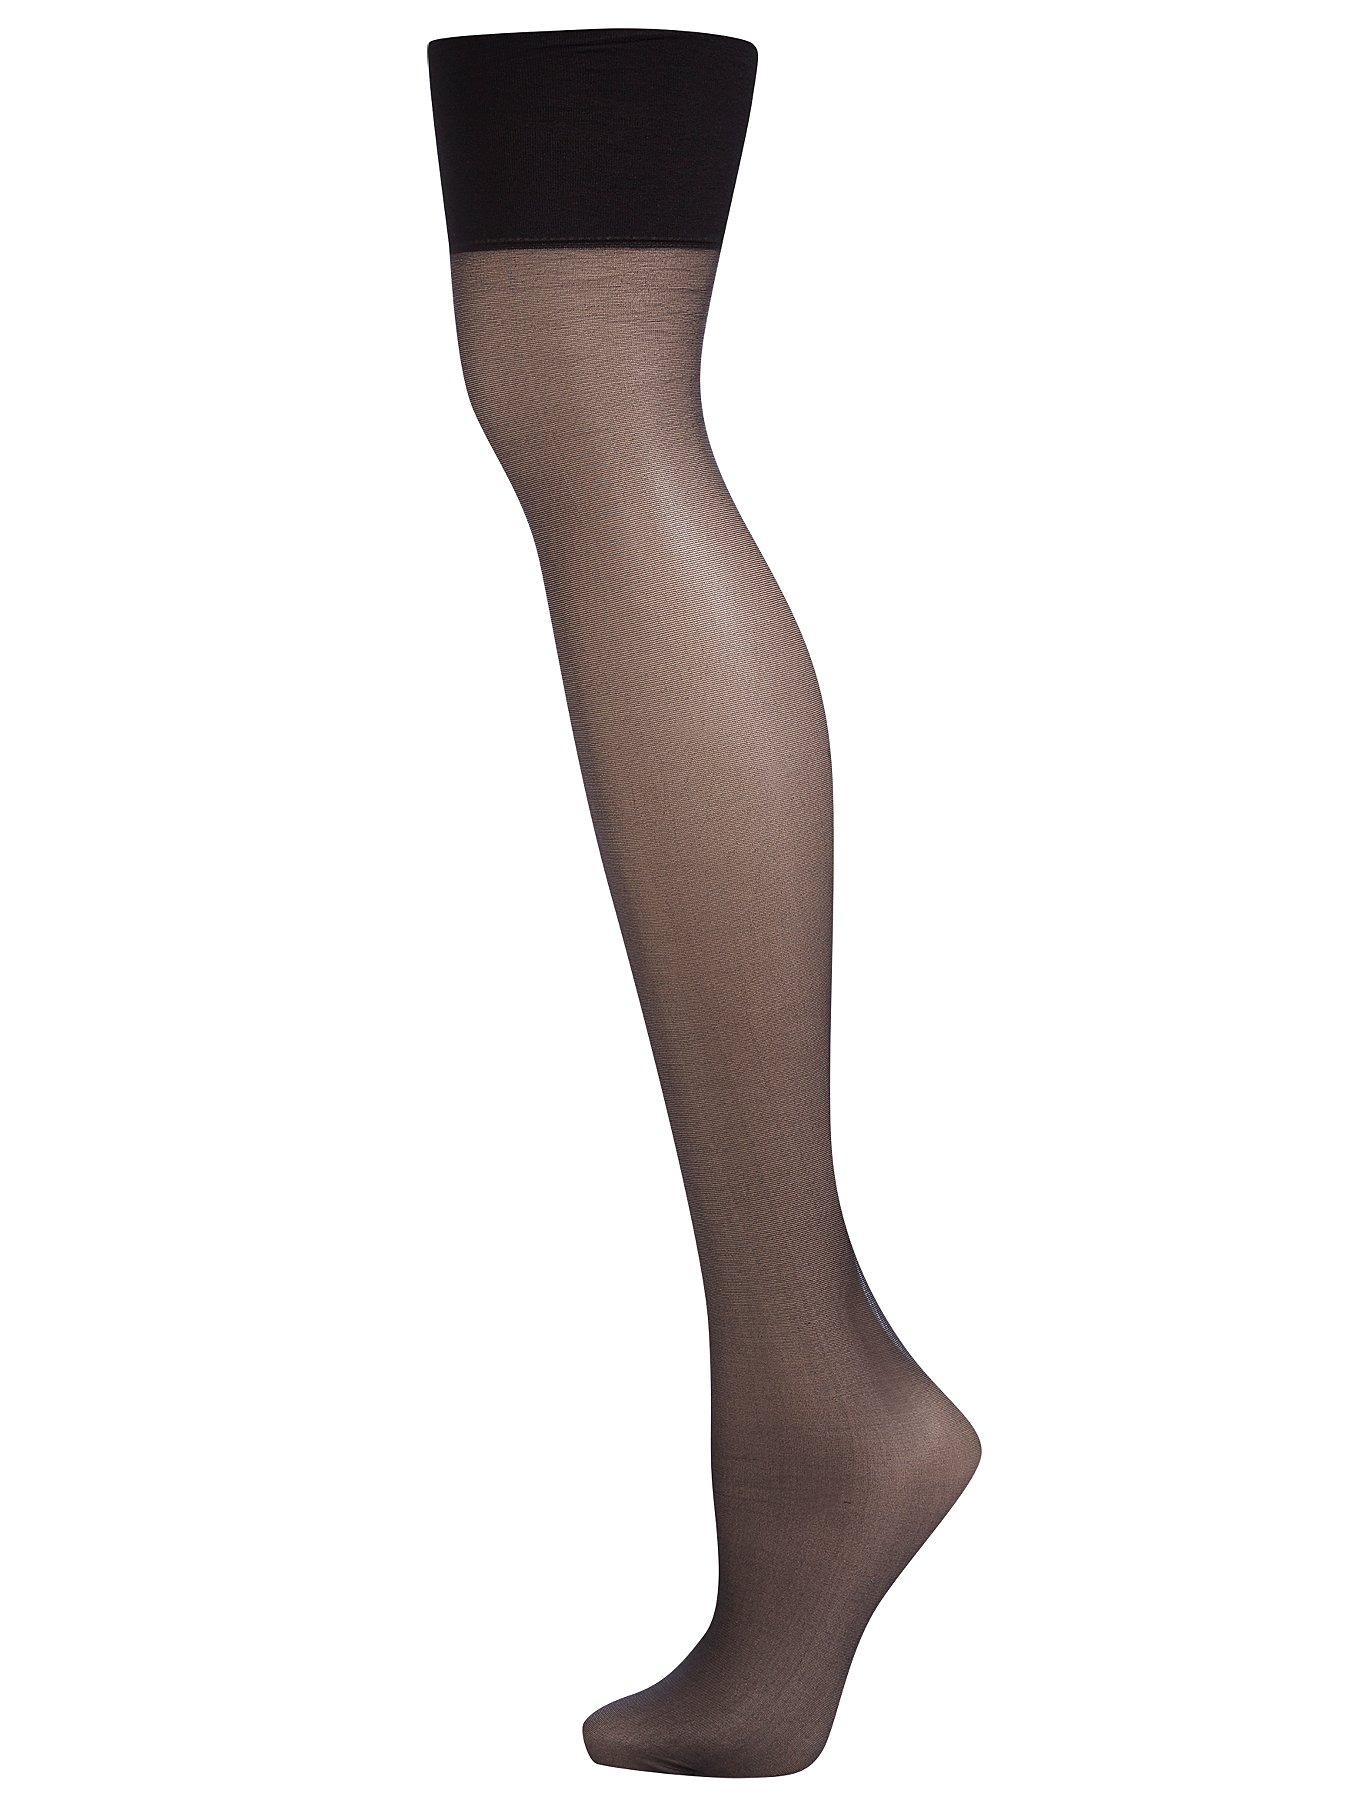 100% authenticated 2020 quality 2 Pack Ultimate Sheen Stockings